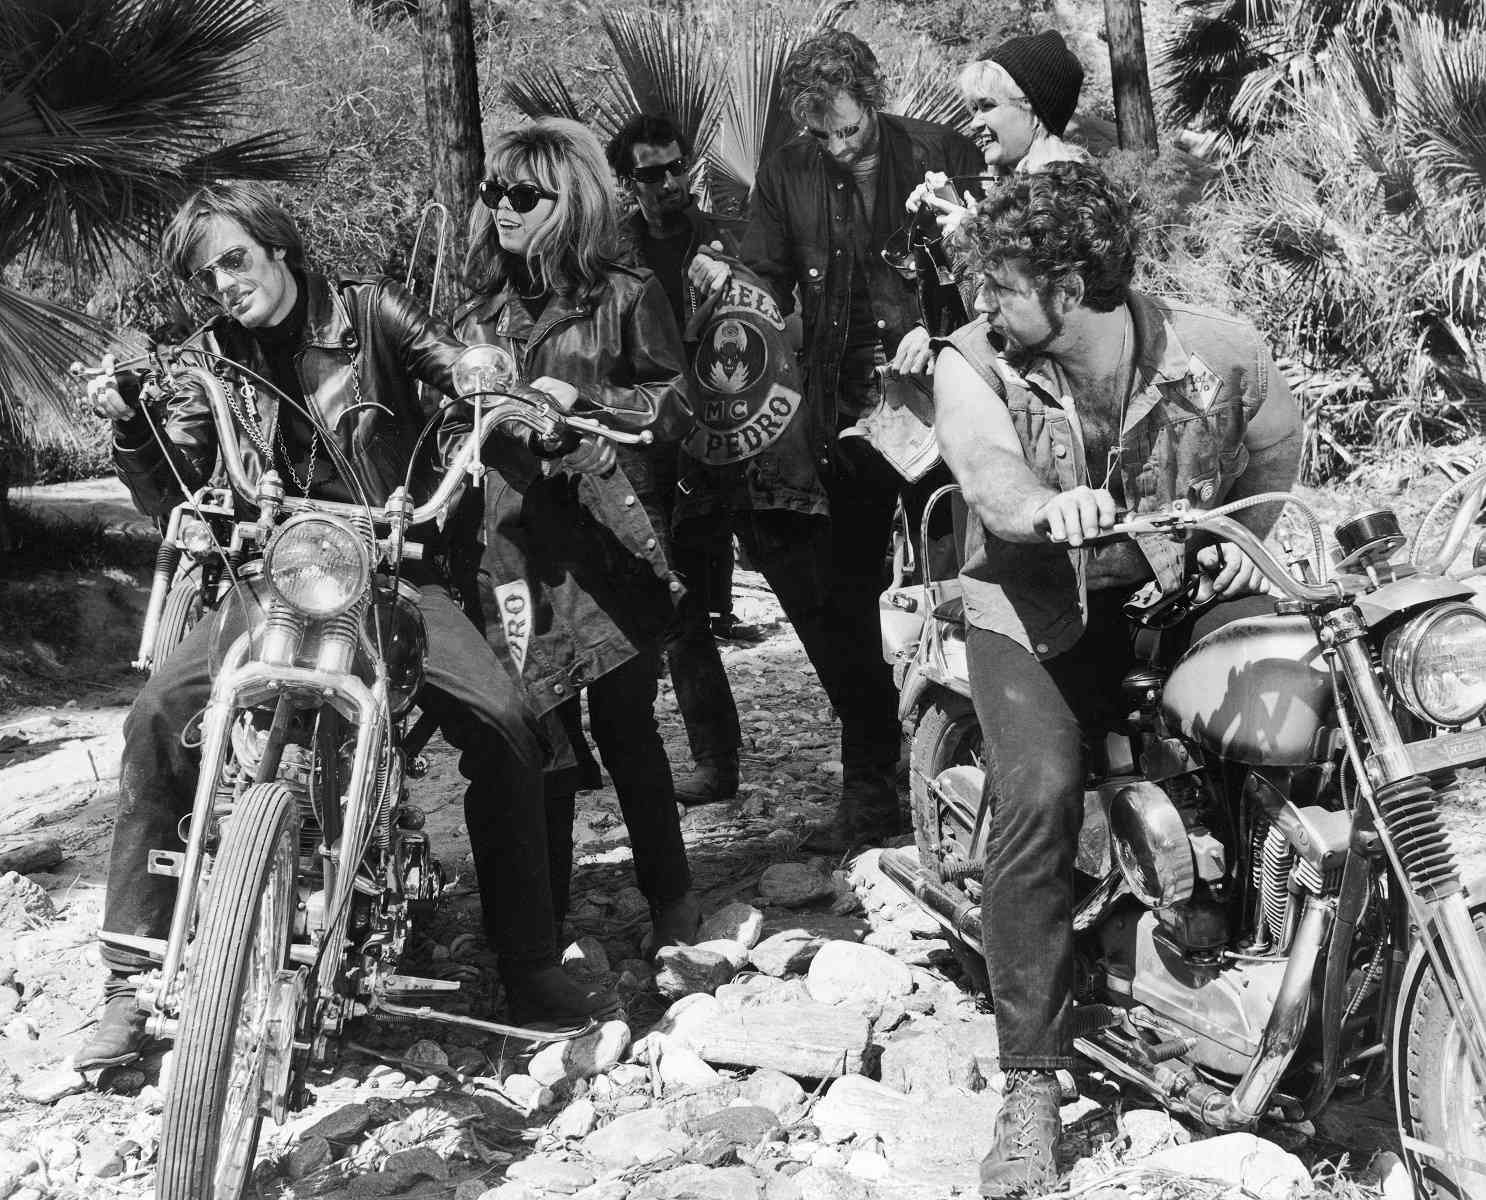 Peter Fonda and Nancy Sinatra in 'The Wild Angels' (1966)